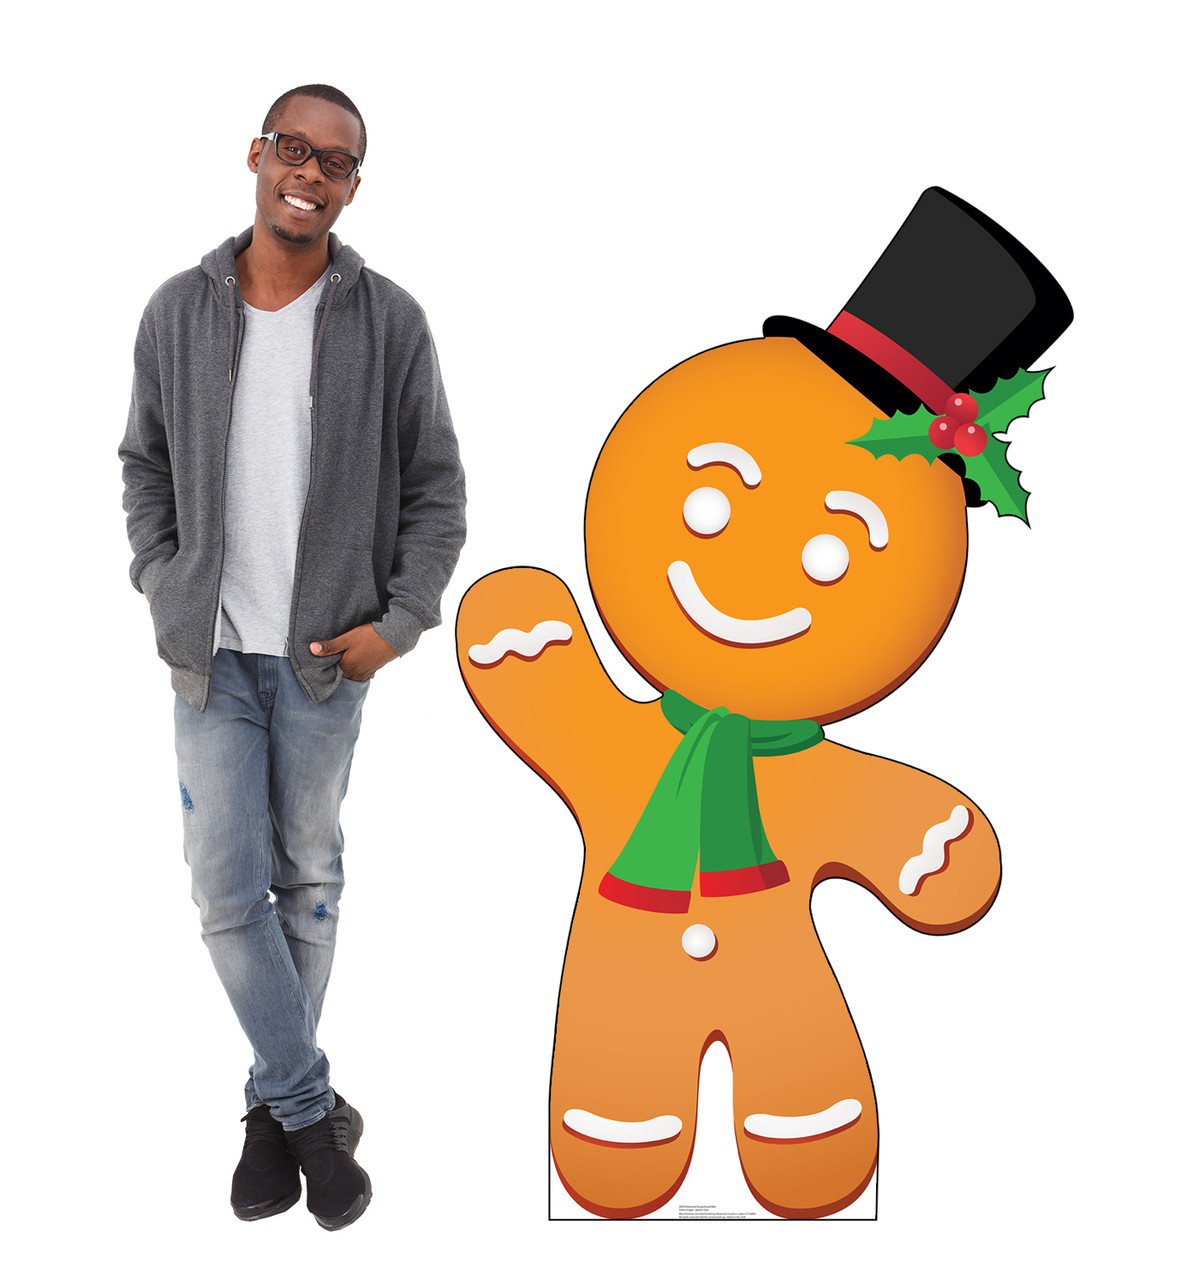 Life-size cardboard standee of Illustrated Gingerbread Man with Model.